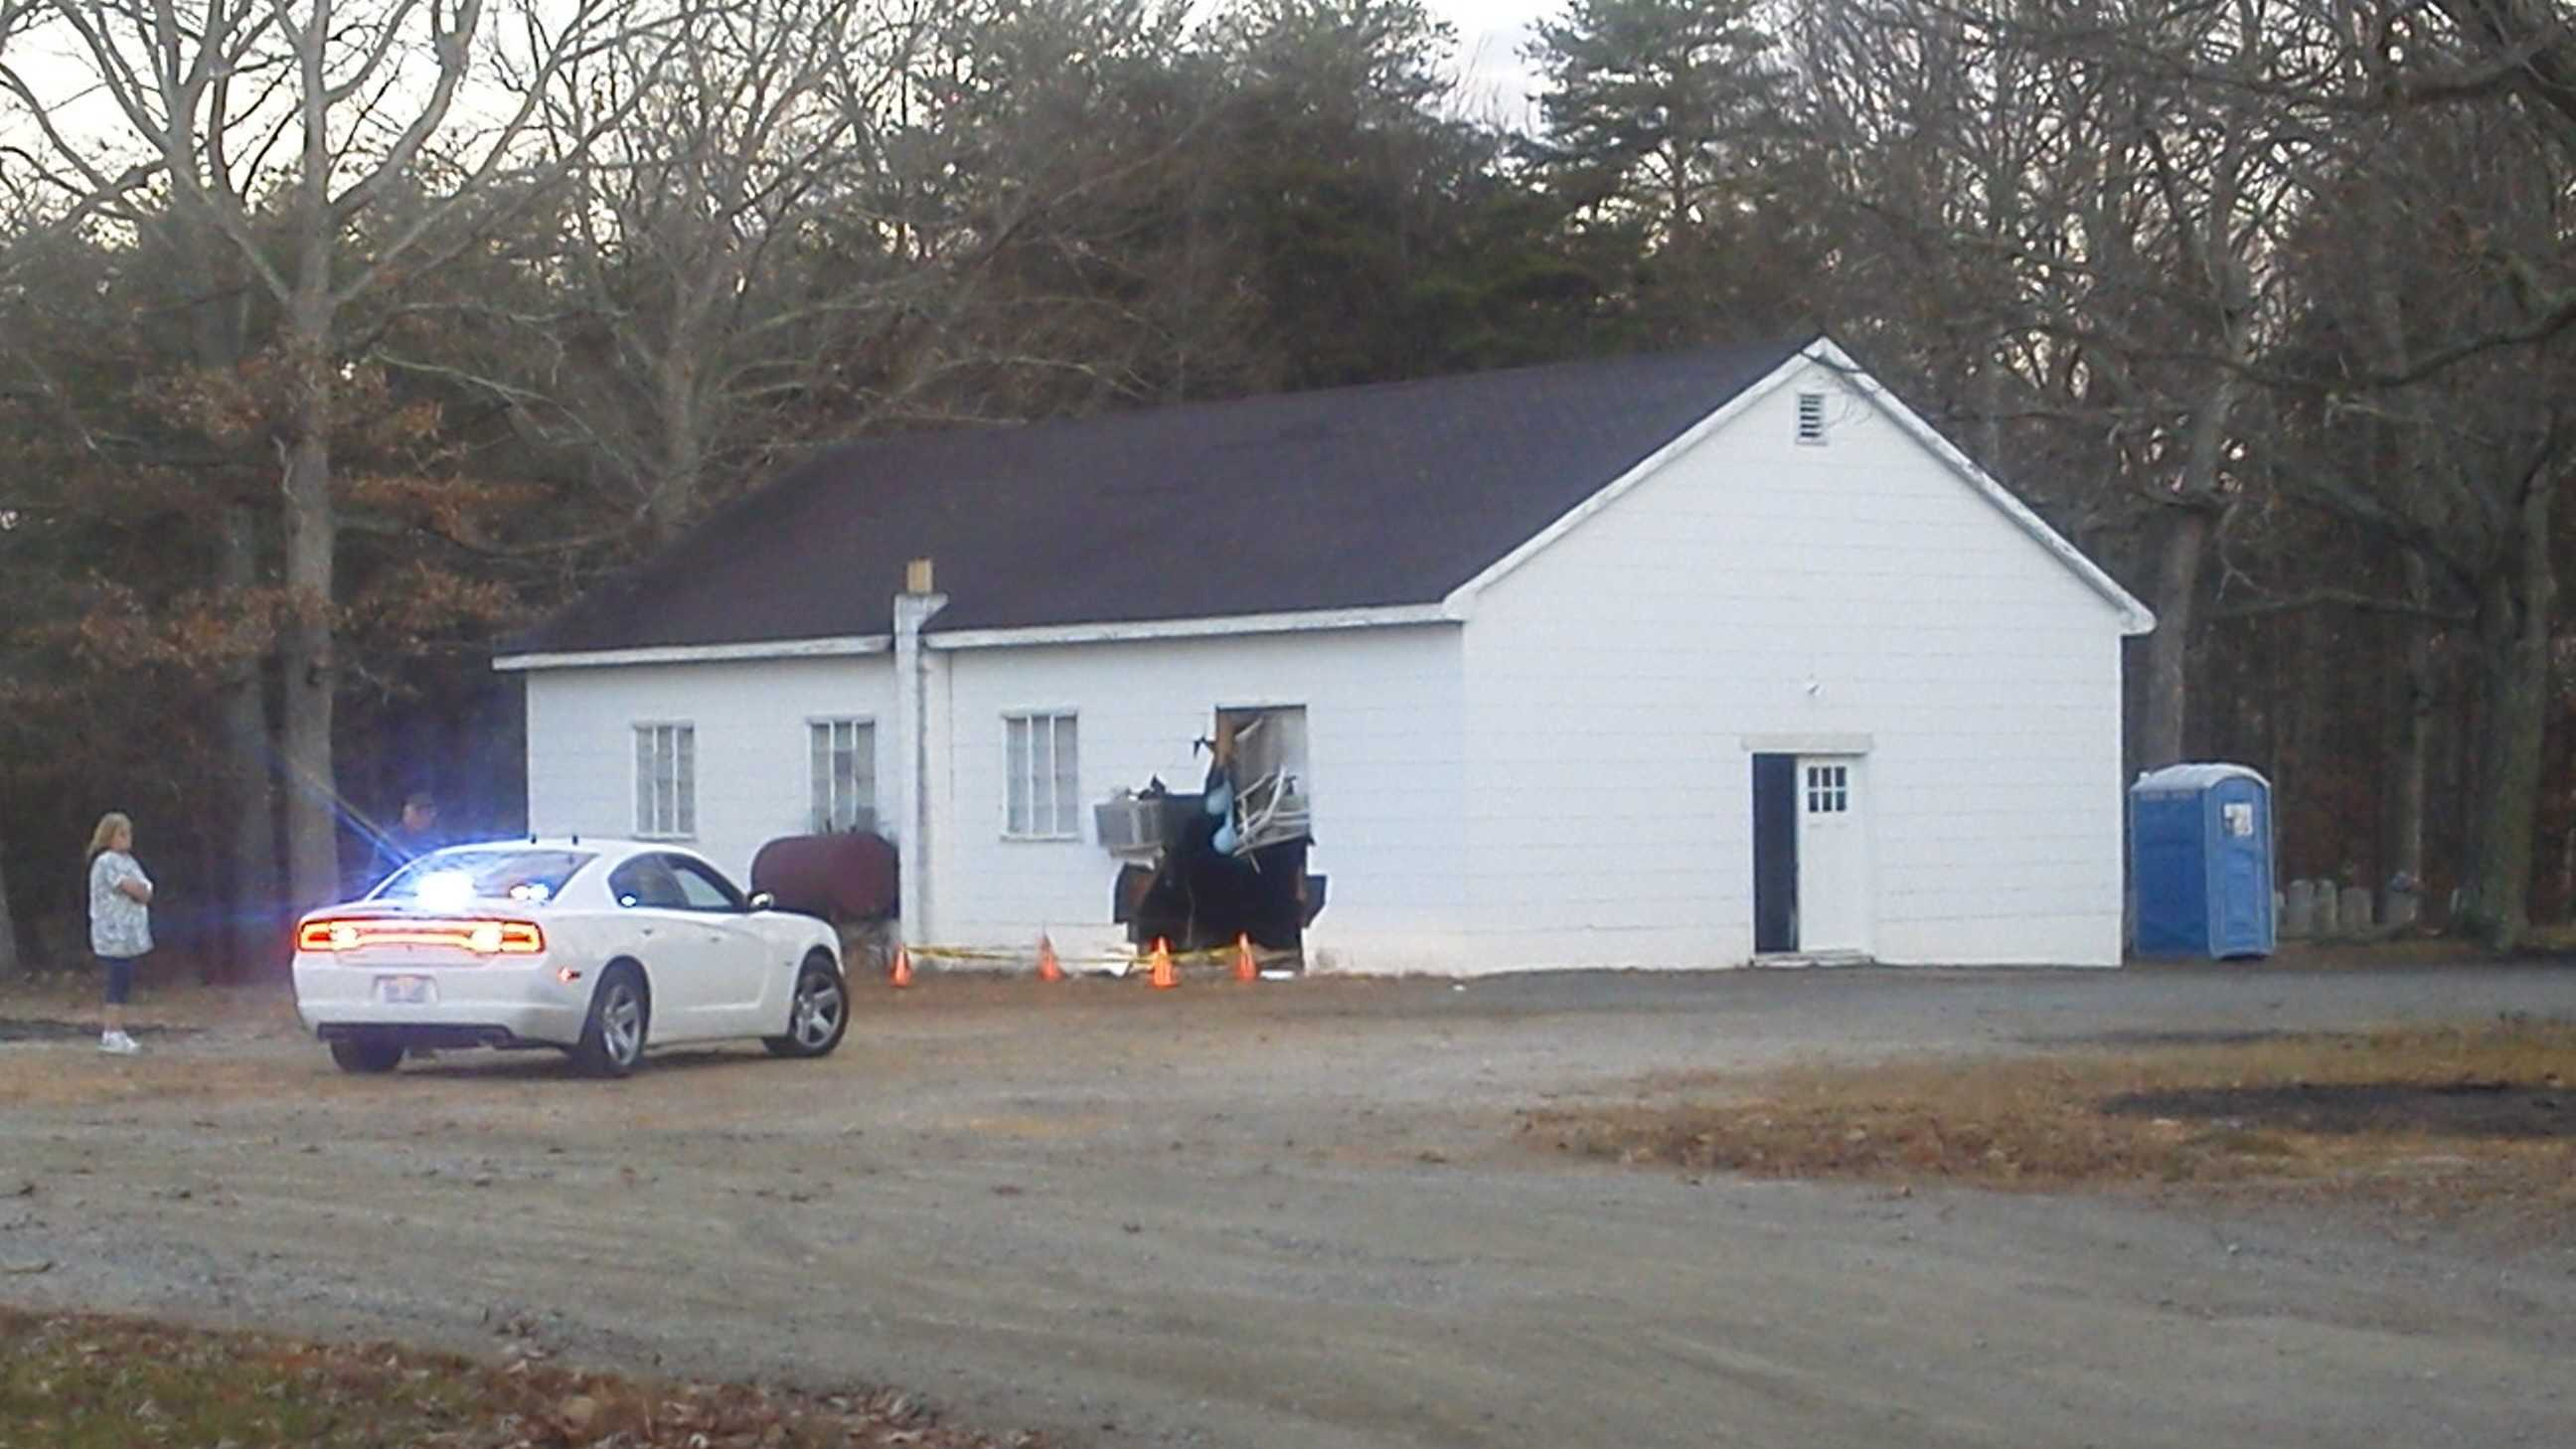 A car plowed into a building on the property of New Hope Baptist Church Tuesday morning. (Joey McDonald/WXII)